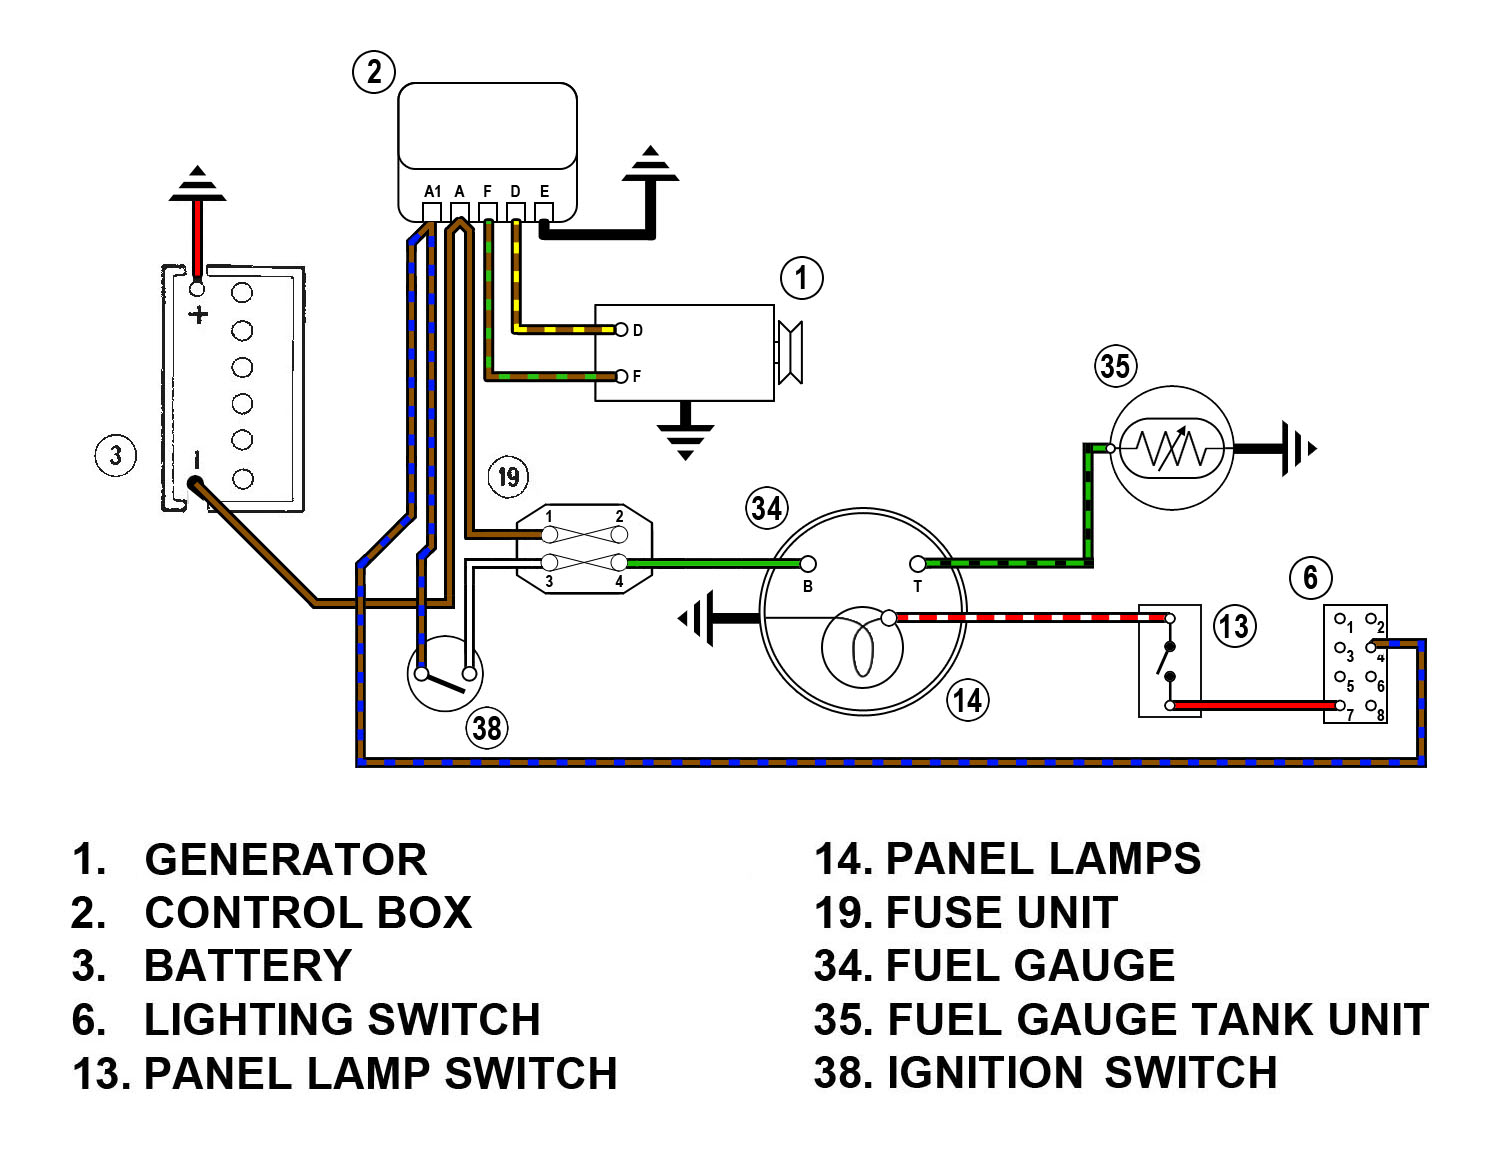 1977 ford f 150 fuel sending unit wiring wiring diagrams cheap Fuel Gauge Sending Unit Wiring Diagram 1977 ford f 150 fuel sending unit wiring bookmark about wiring diagram 1977 ford f 150 fuel sending unit wiring